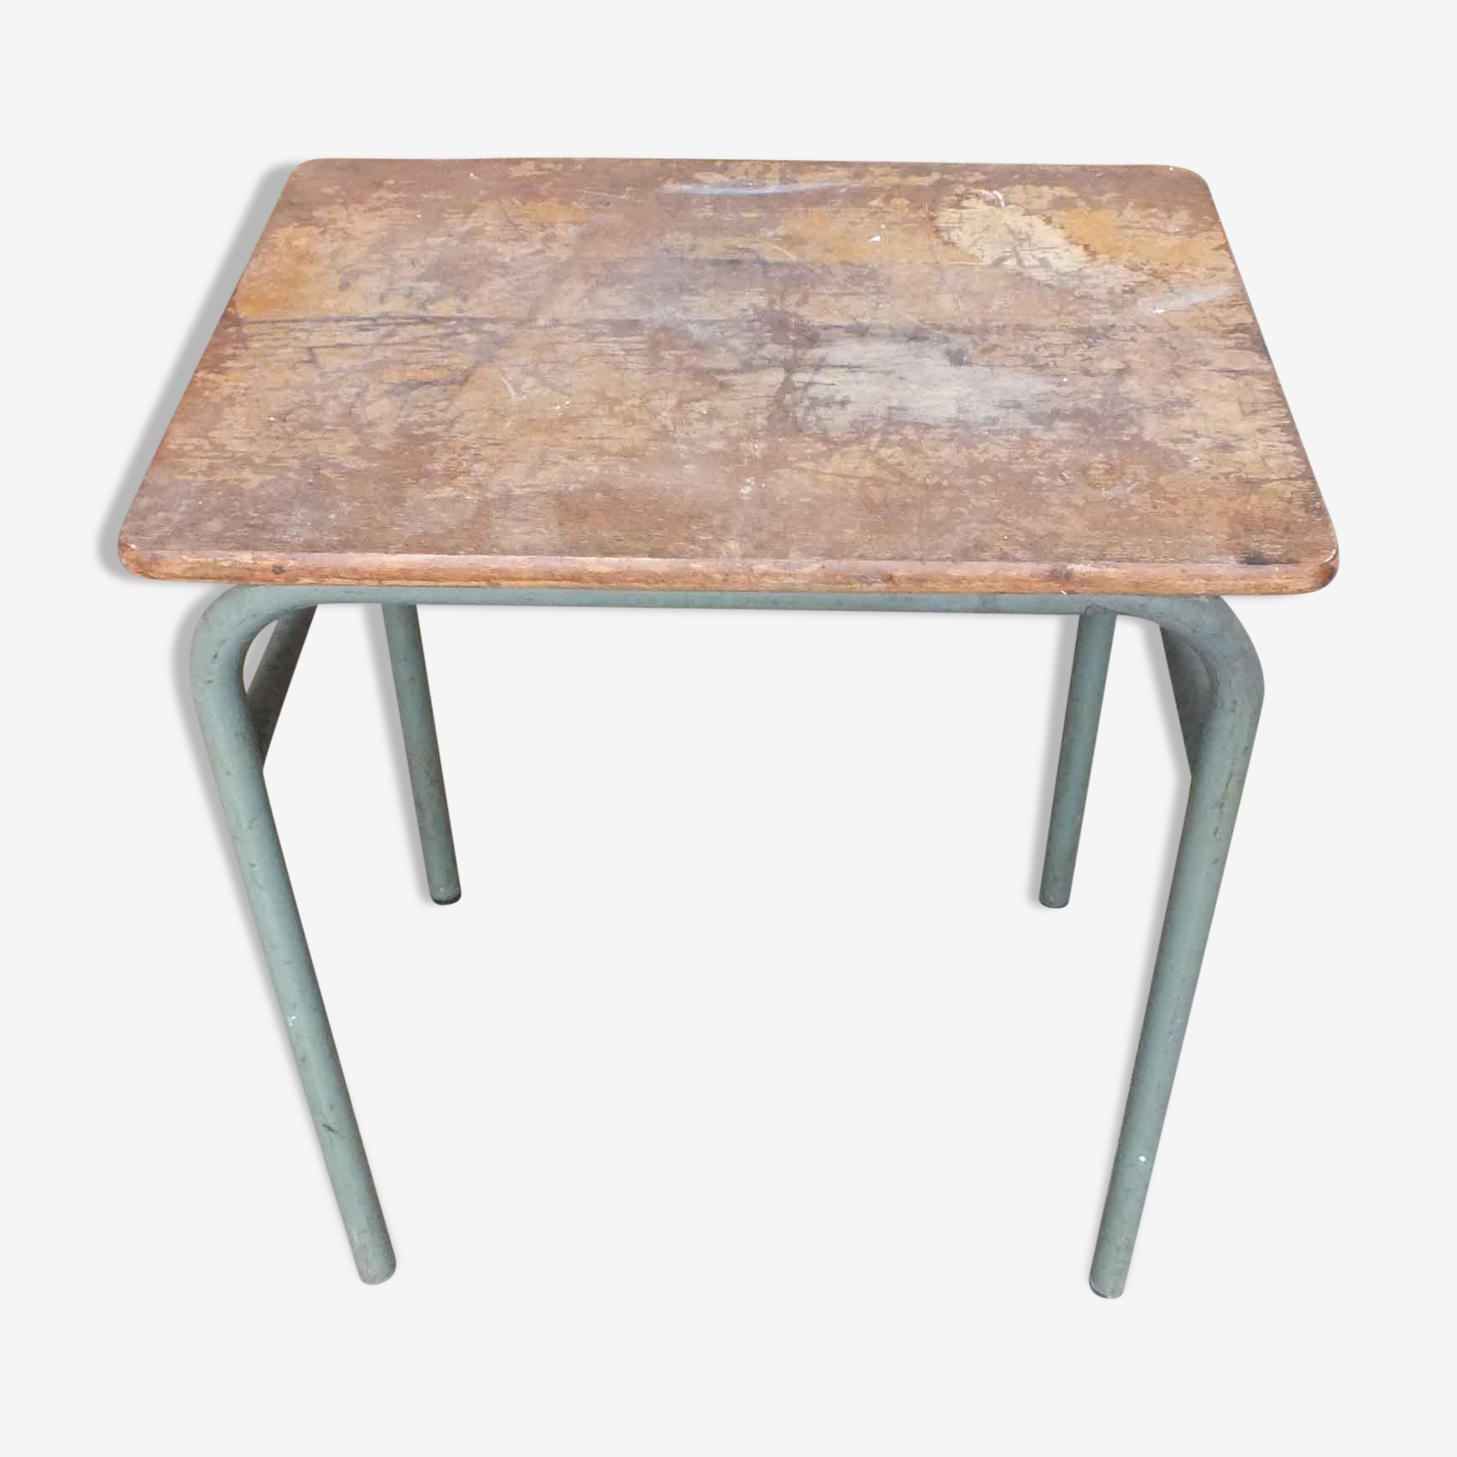 Old school table